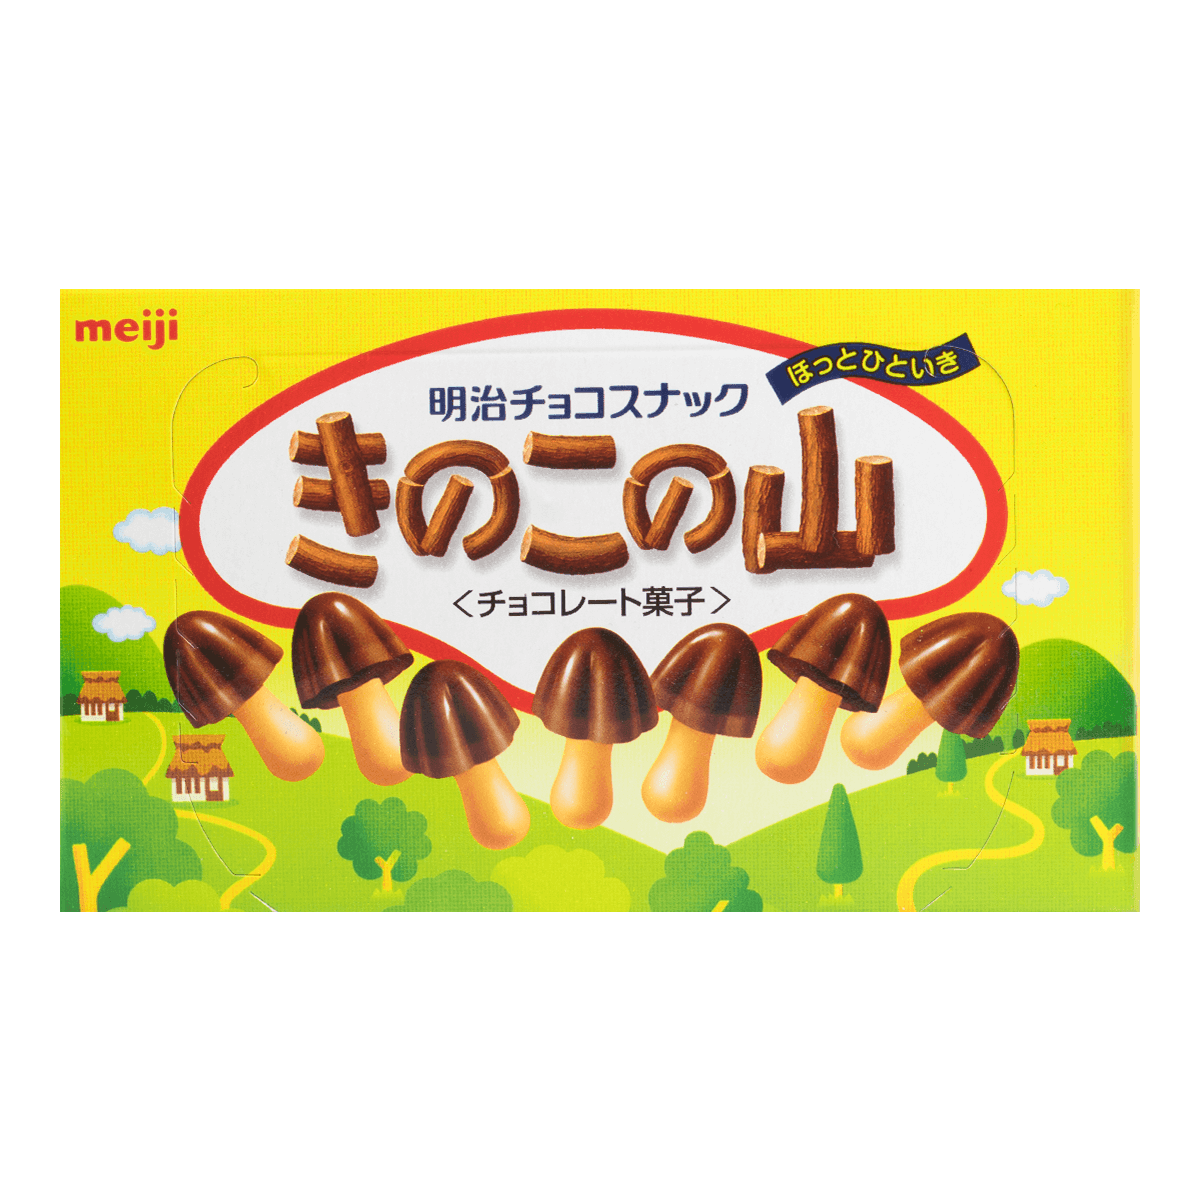 MEIJI Baked Wheat Cracker with Chocolate Mushroom 74g